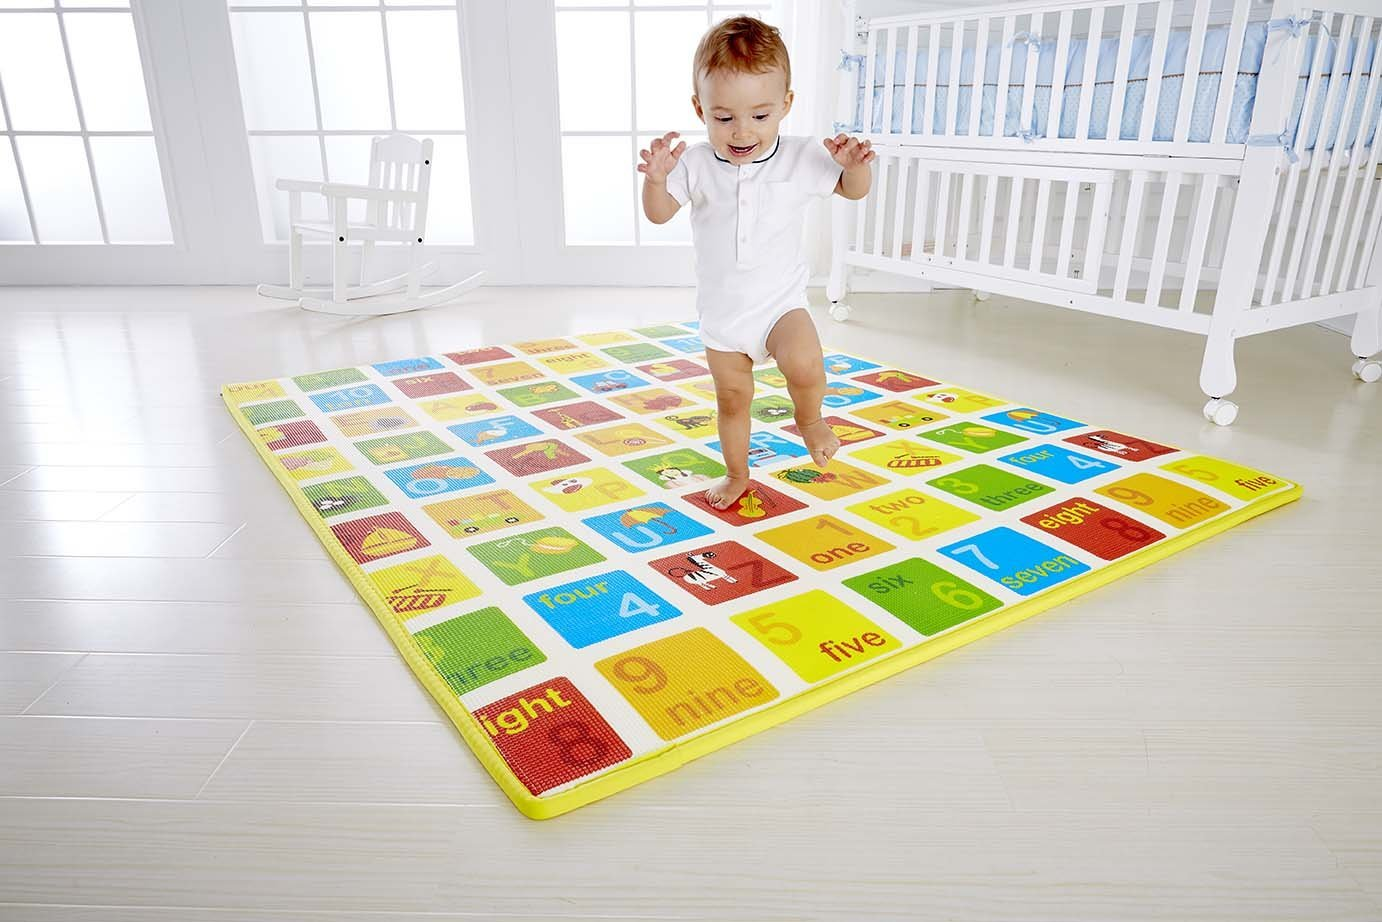 buy waterproof gym price best double durable kids playing mat at playmats sided toddlers play safe baby activity non toys for educational toxin shop mats